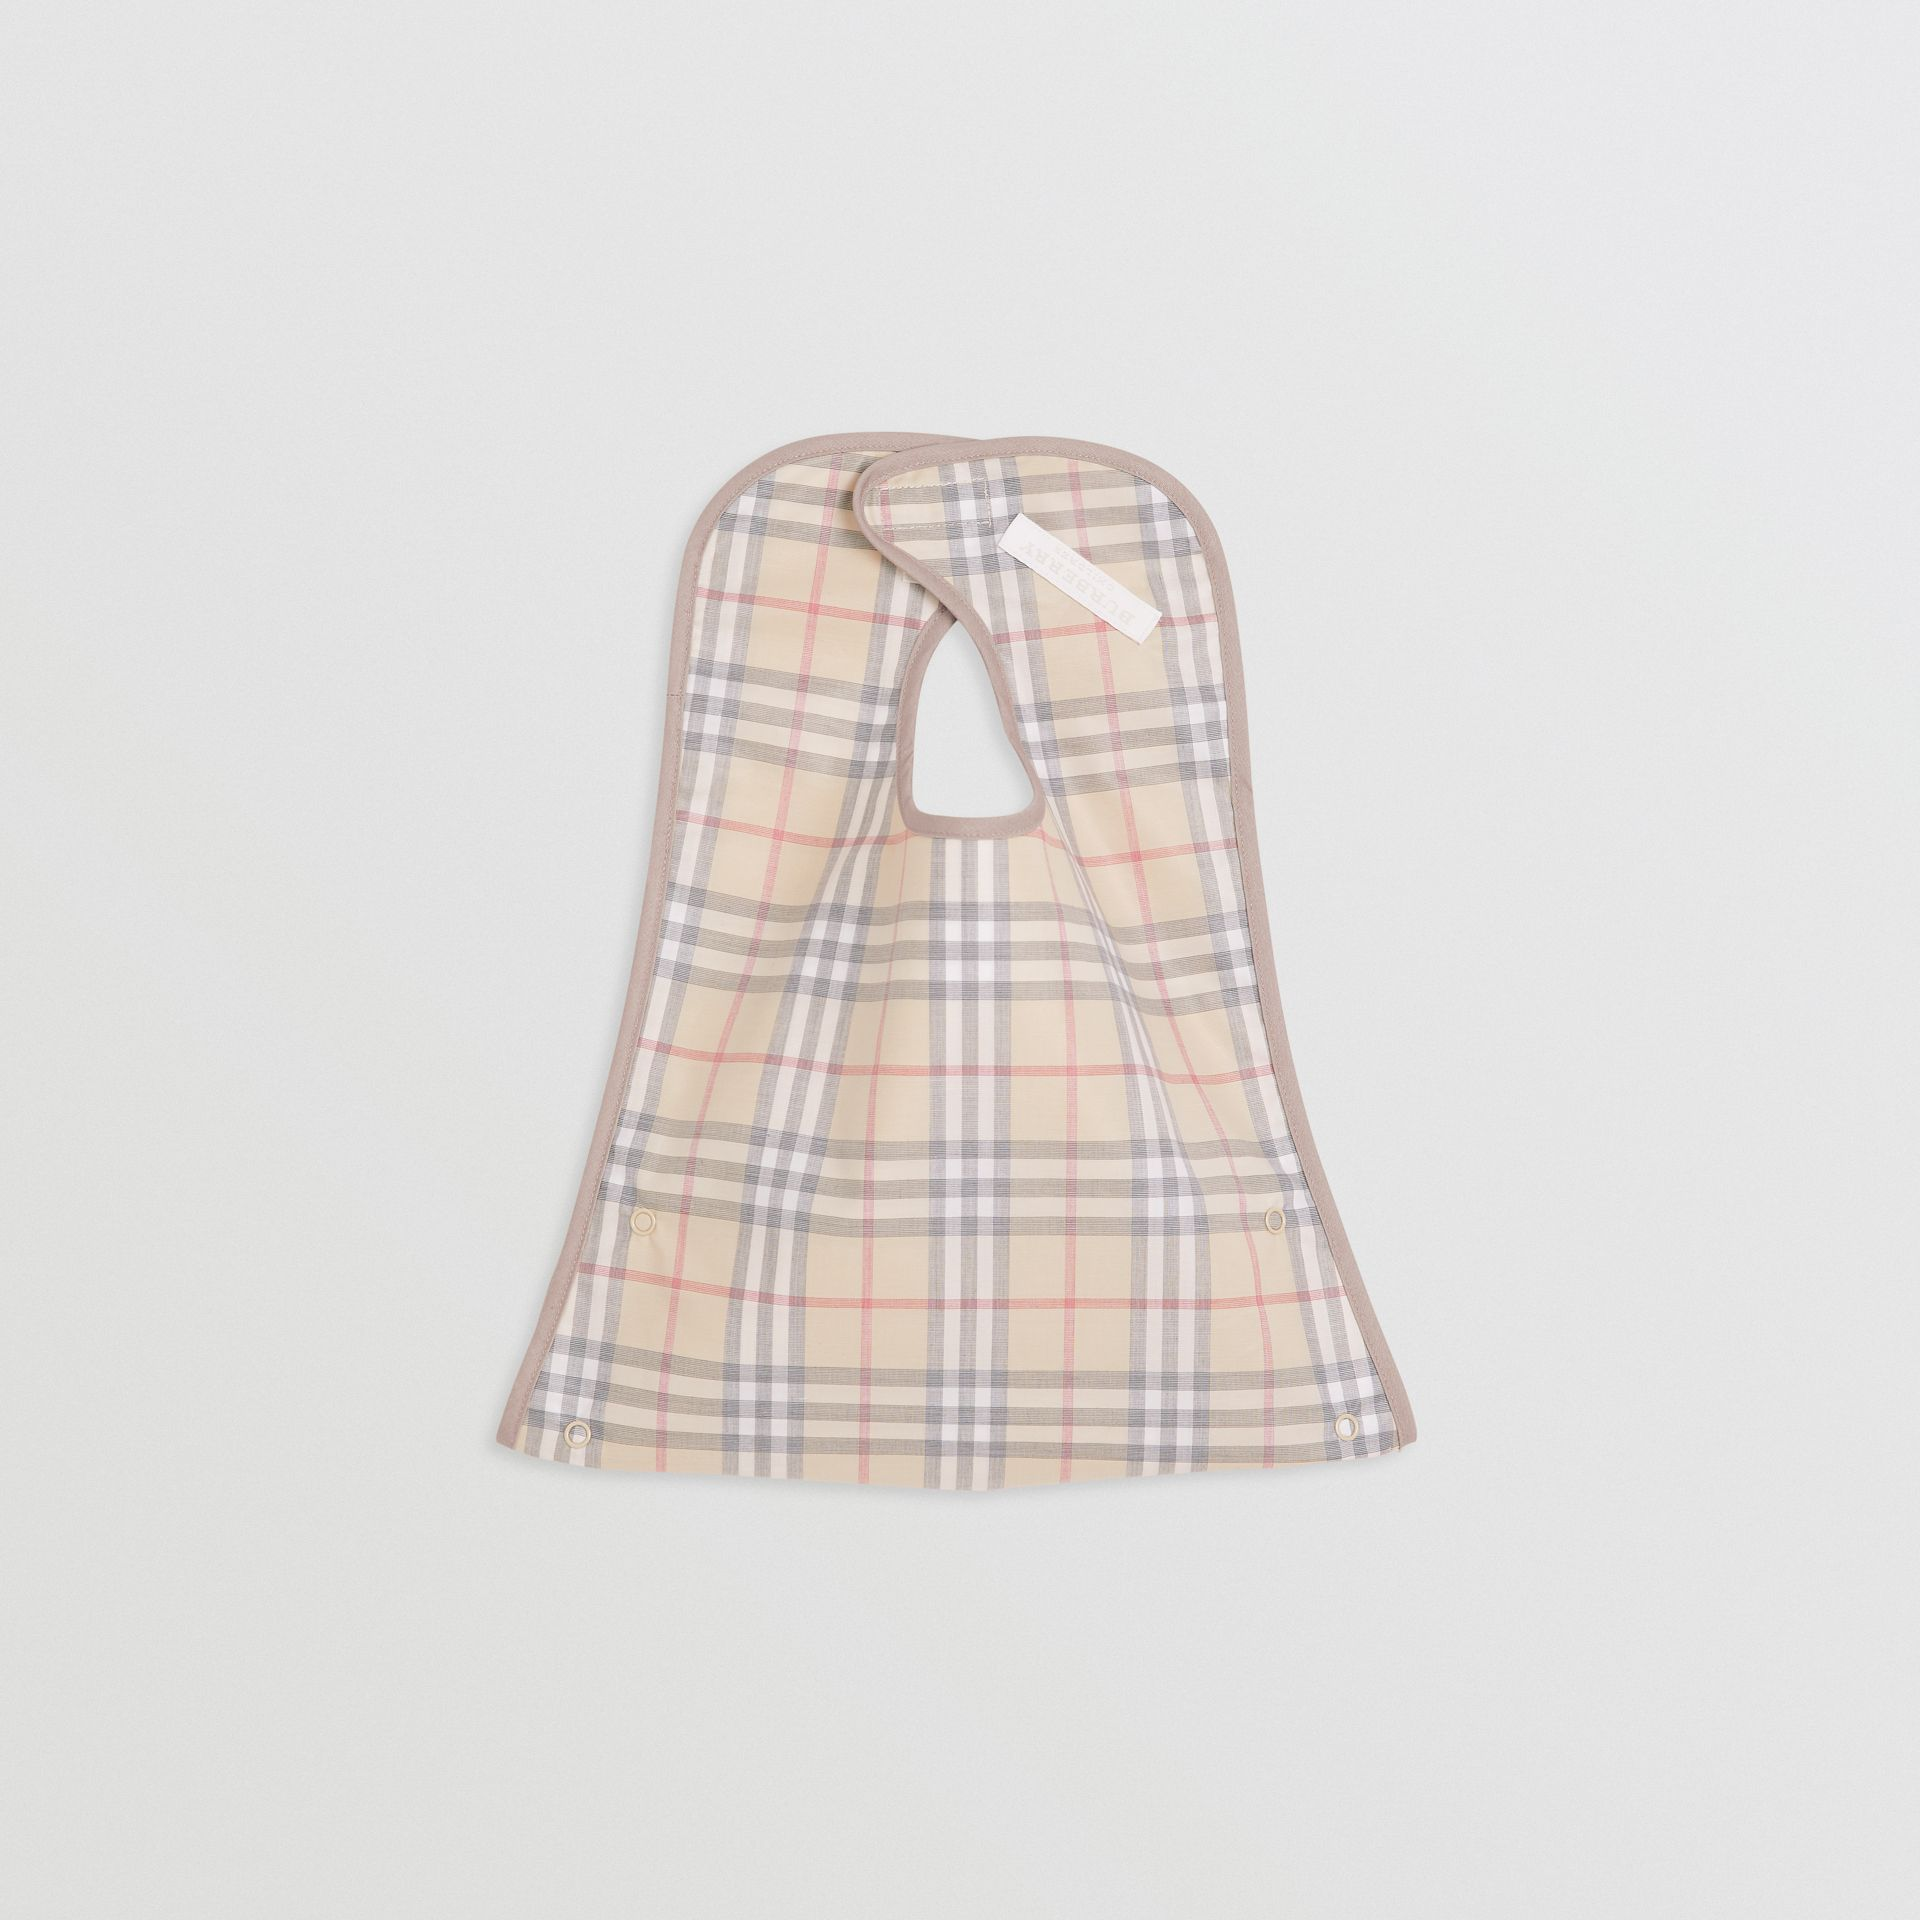 Coated Check Cotton Baby Bib in Pale Stone - Children | Burberry Canada - gallery image 2